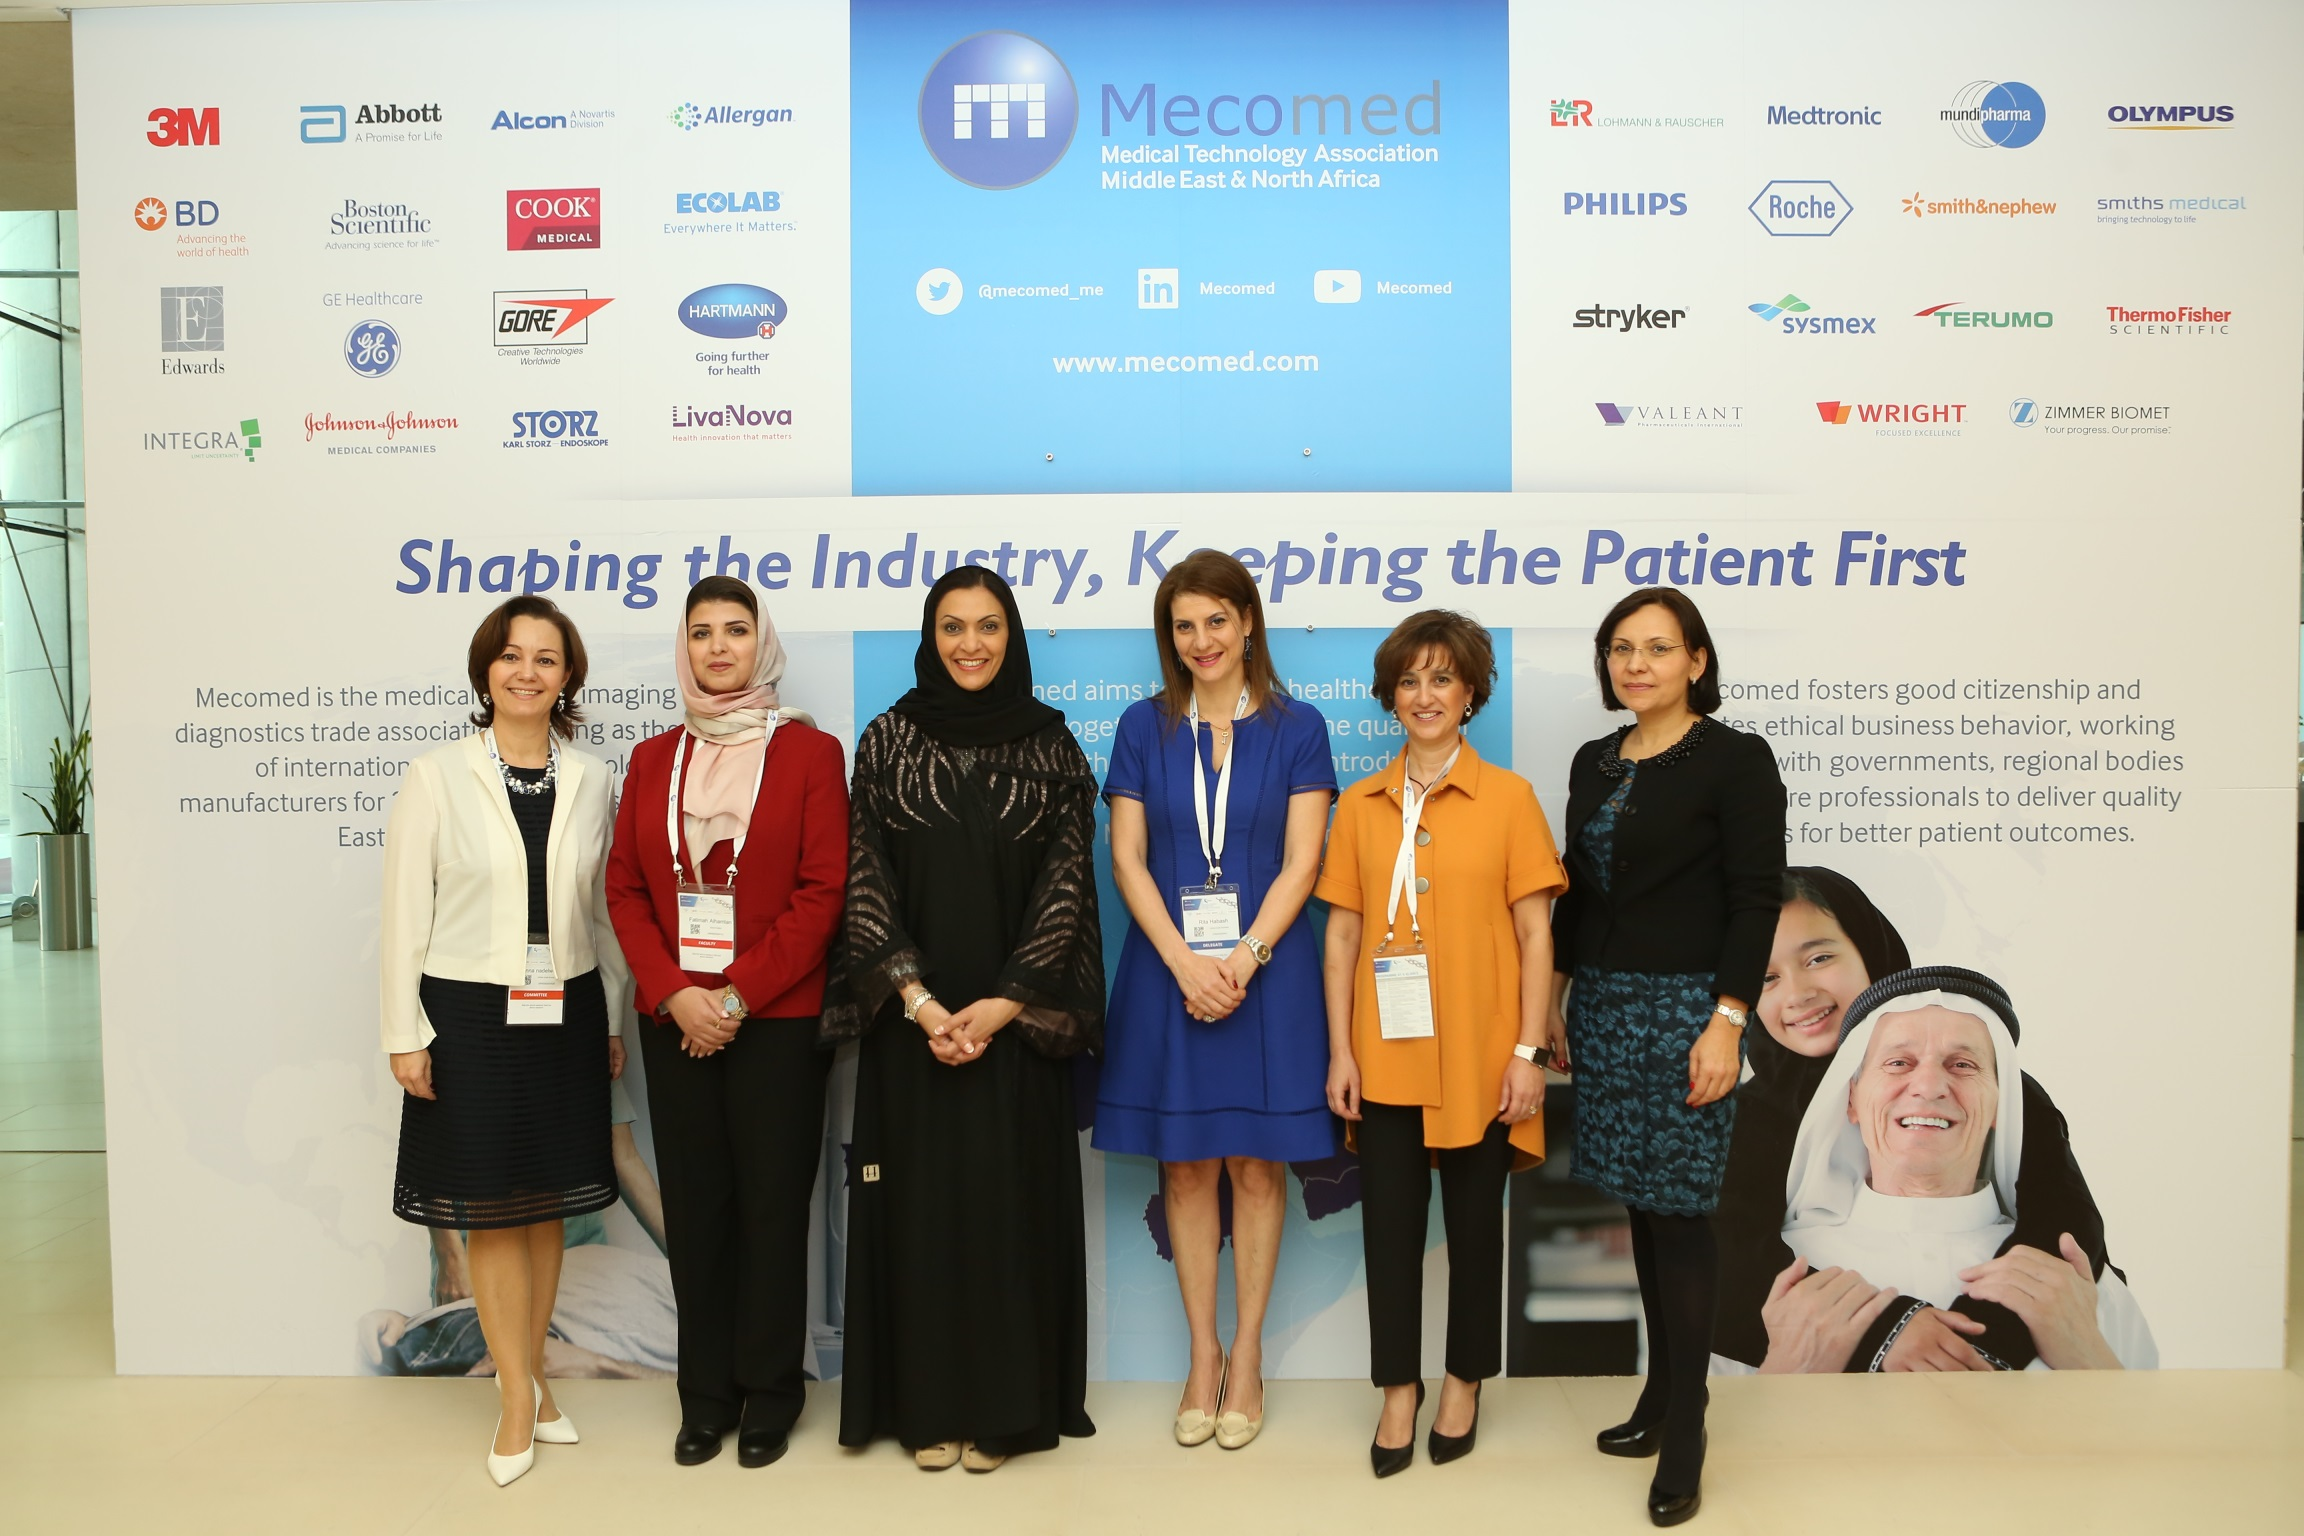 International Women's Day: Healthcare Leaders Commit to Raising the bar on Gender Diversity at the 2017 MENA MedTech Forum